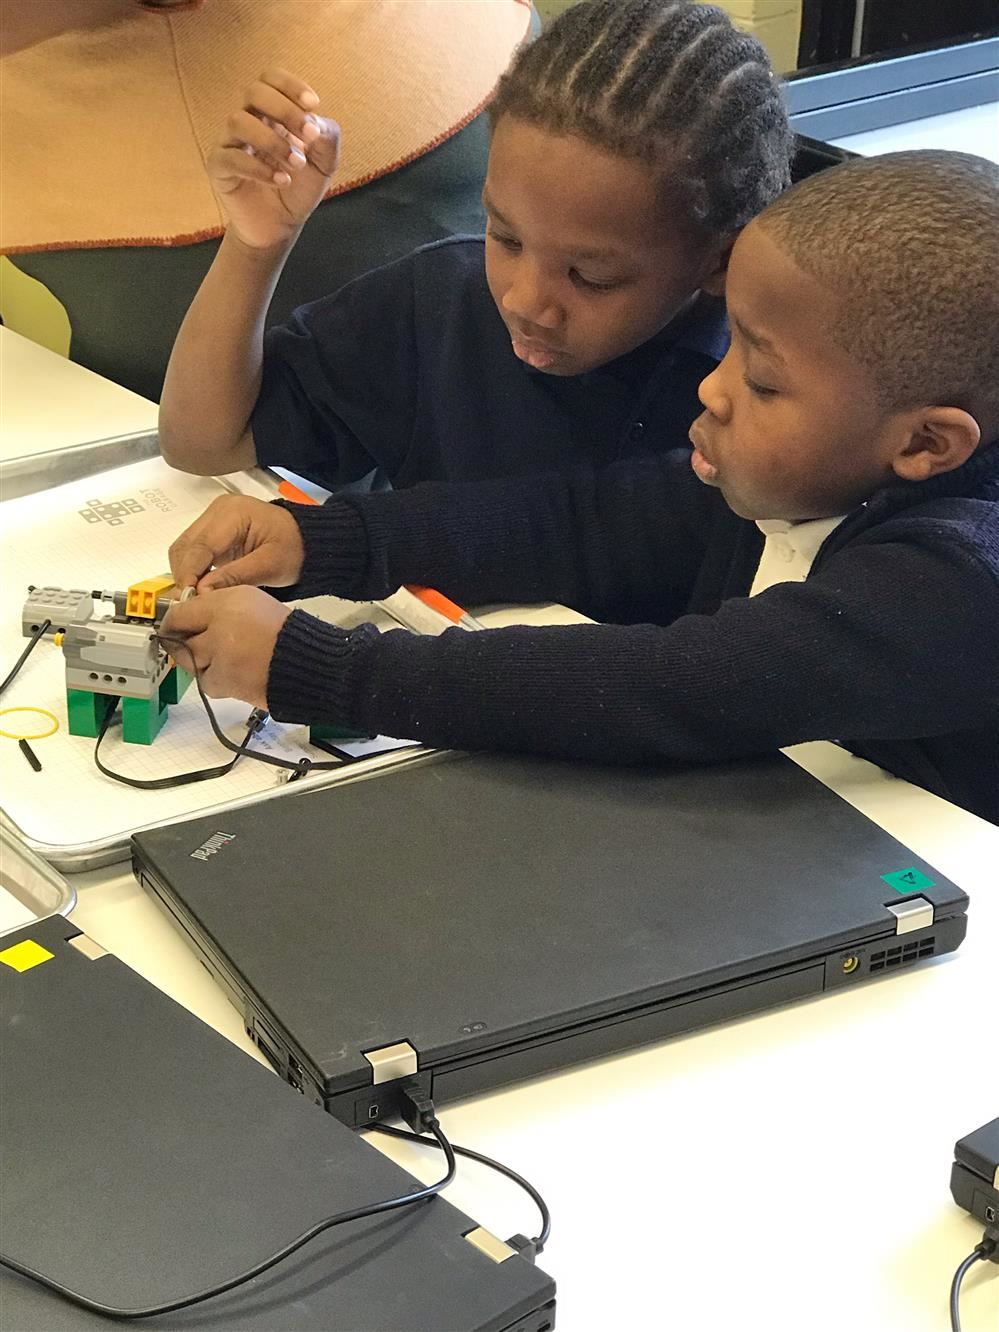 kindergarten students build a robot with computers and connect blocks